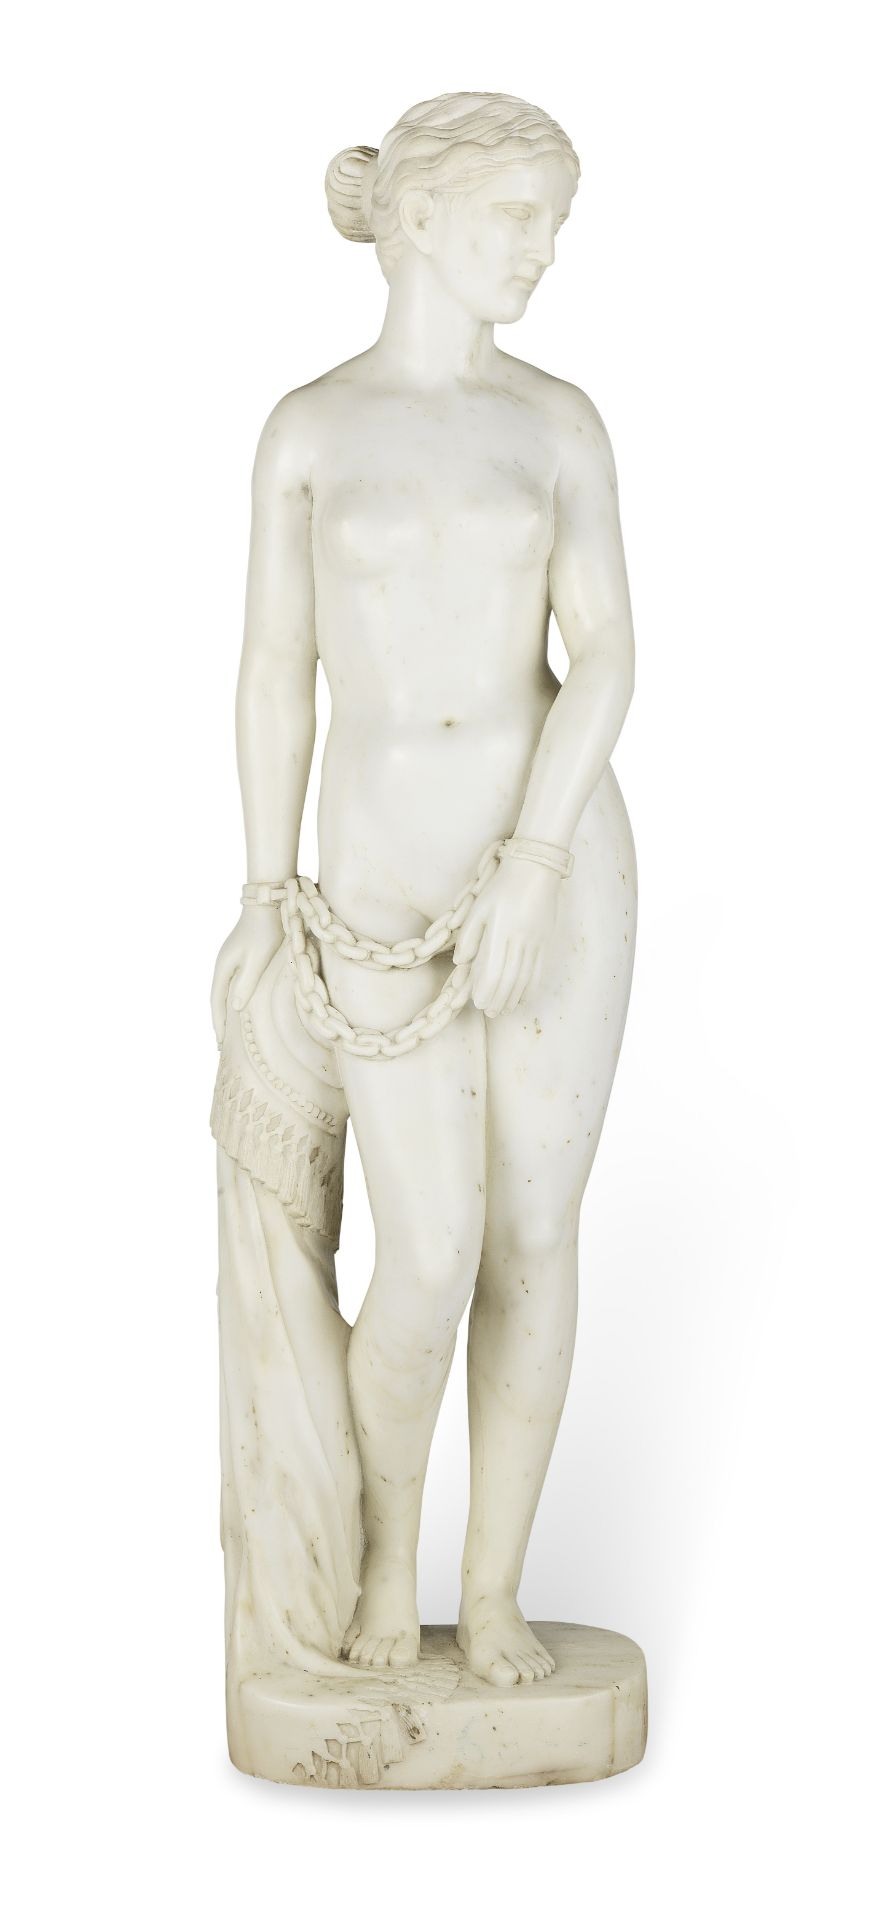 Los 150 - A white marble figure of 'The Greek Slave' after Hiram Powers (American, 1805-1873)